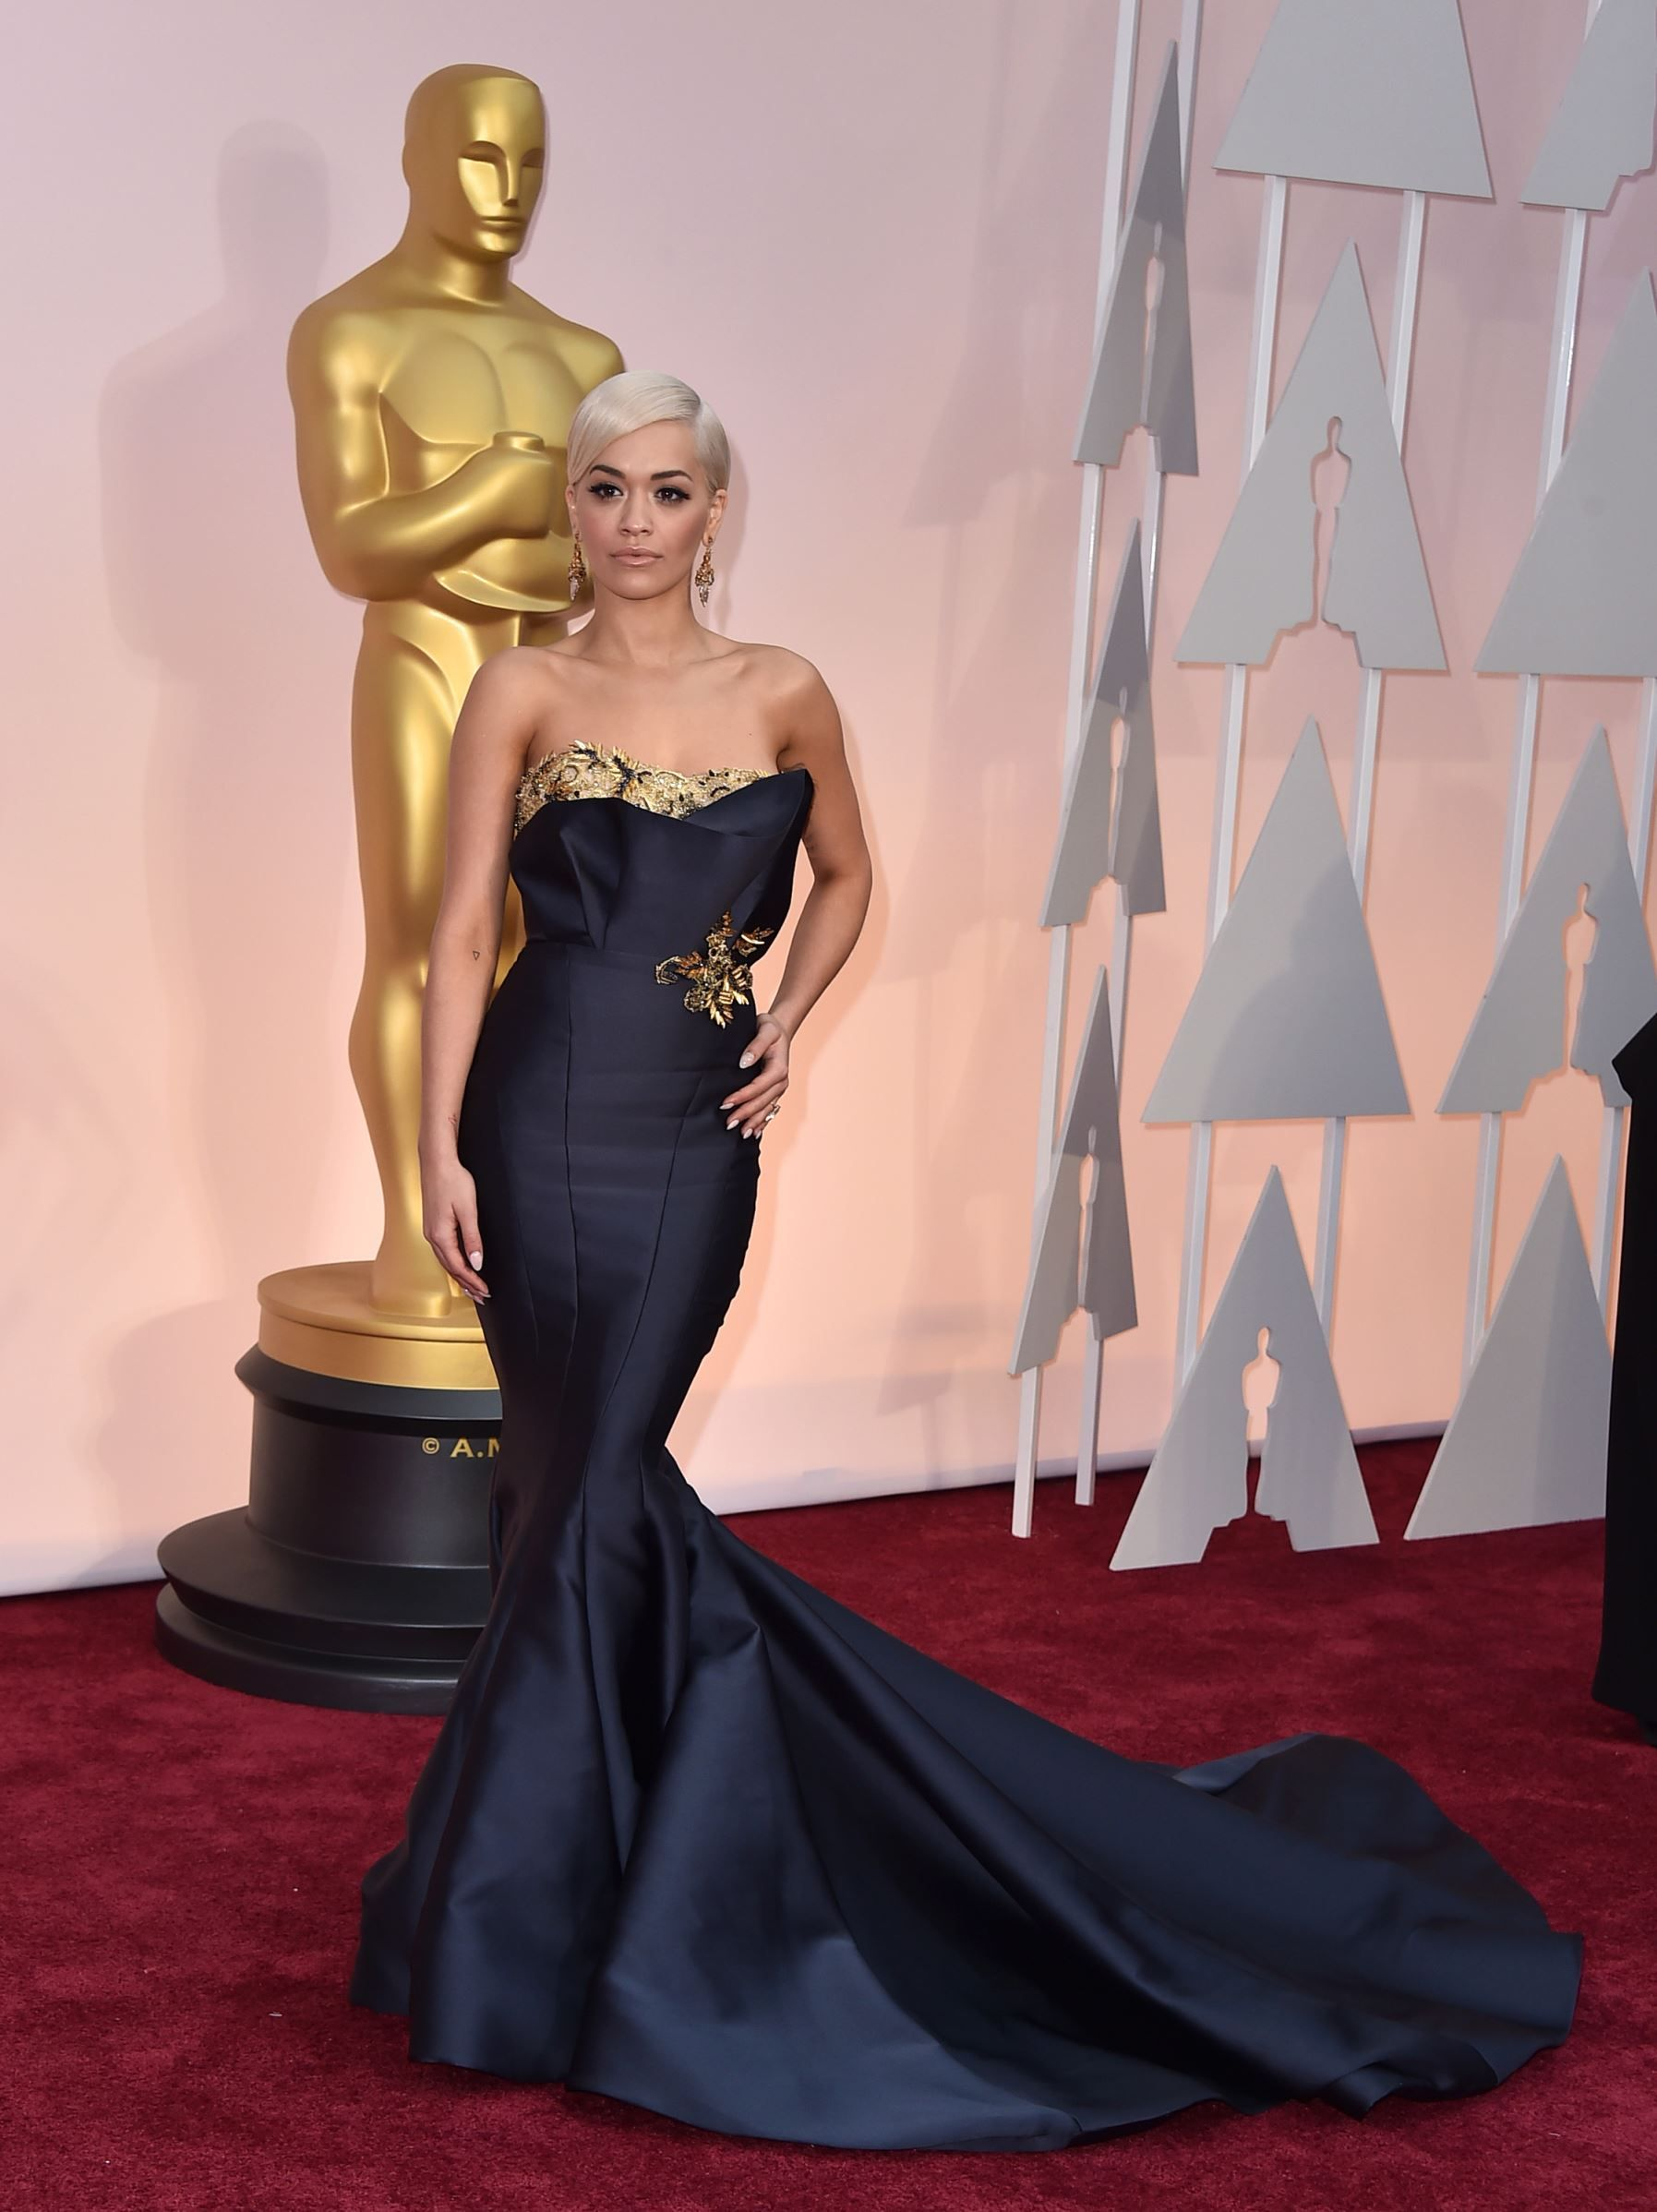 6557a8cd5c Rita Ora -2015 Academy Awards Red Carpet...What to make a statement   Imagine this in bridal fabric with embellishments that fits your style.